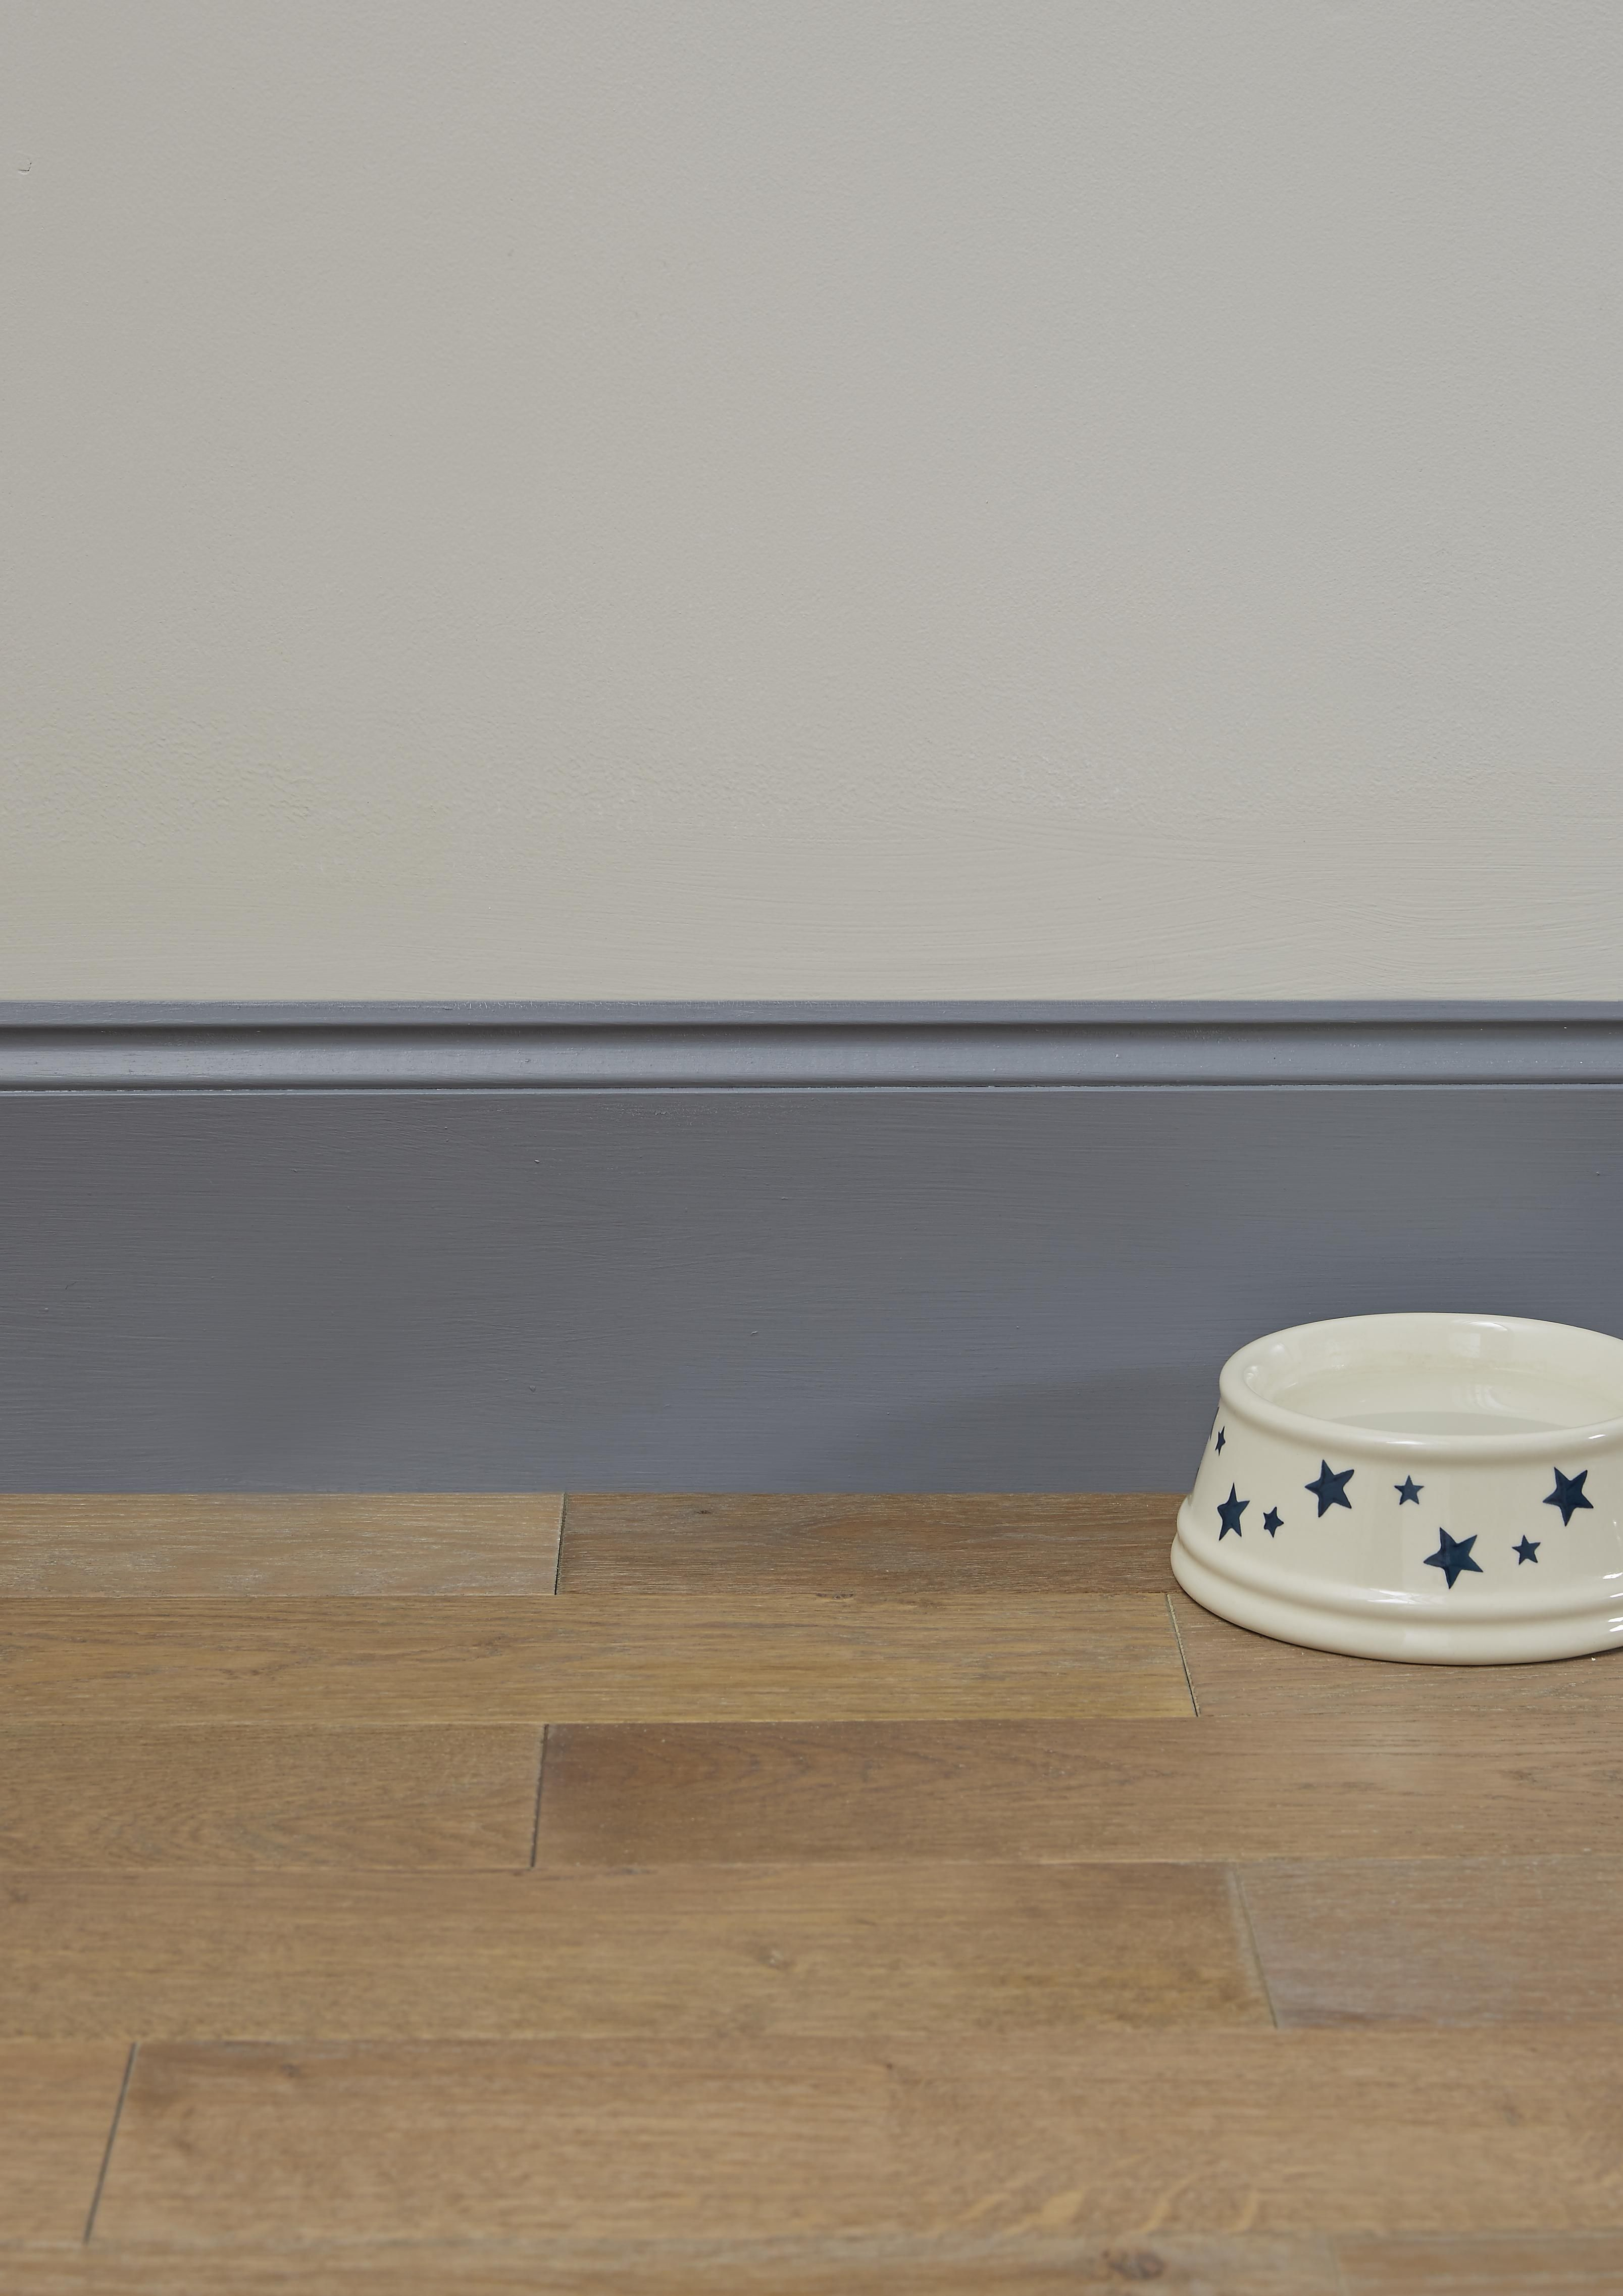 Plastic Carpet Protector For Painting Skirting Boards